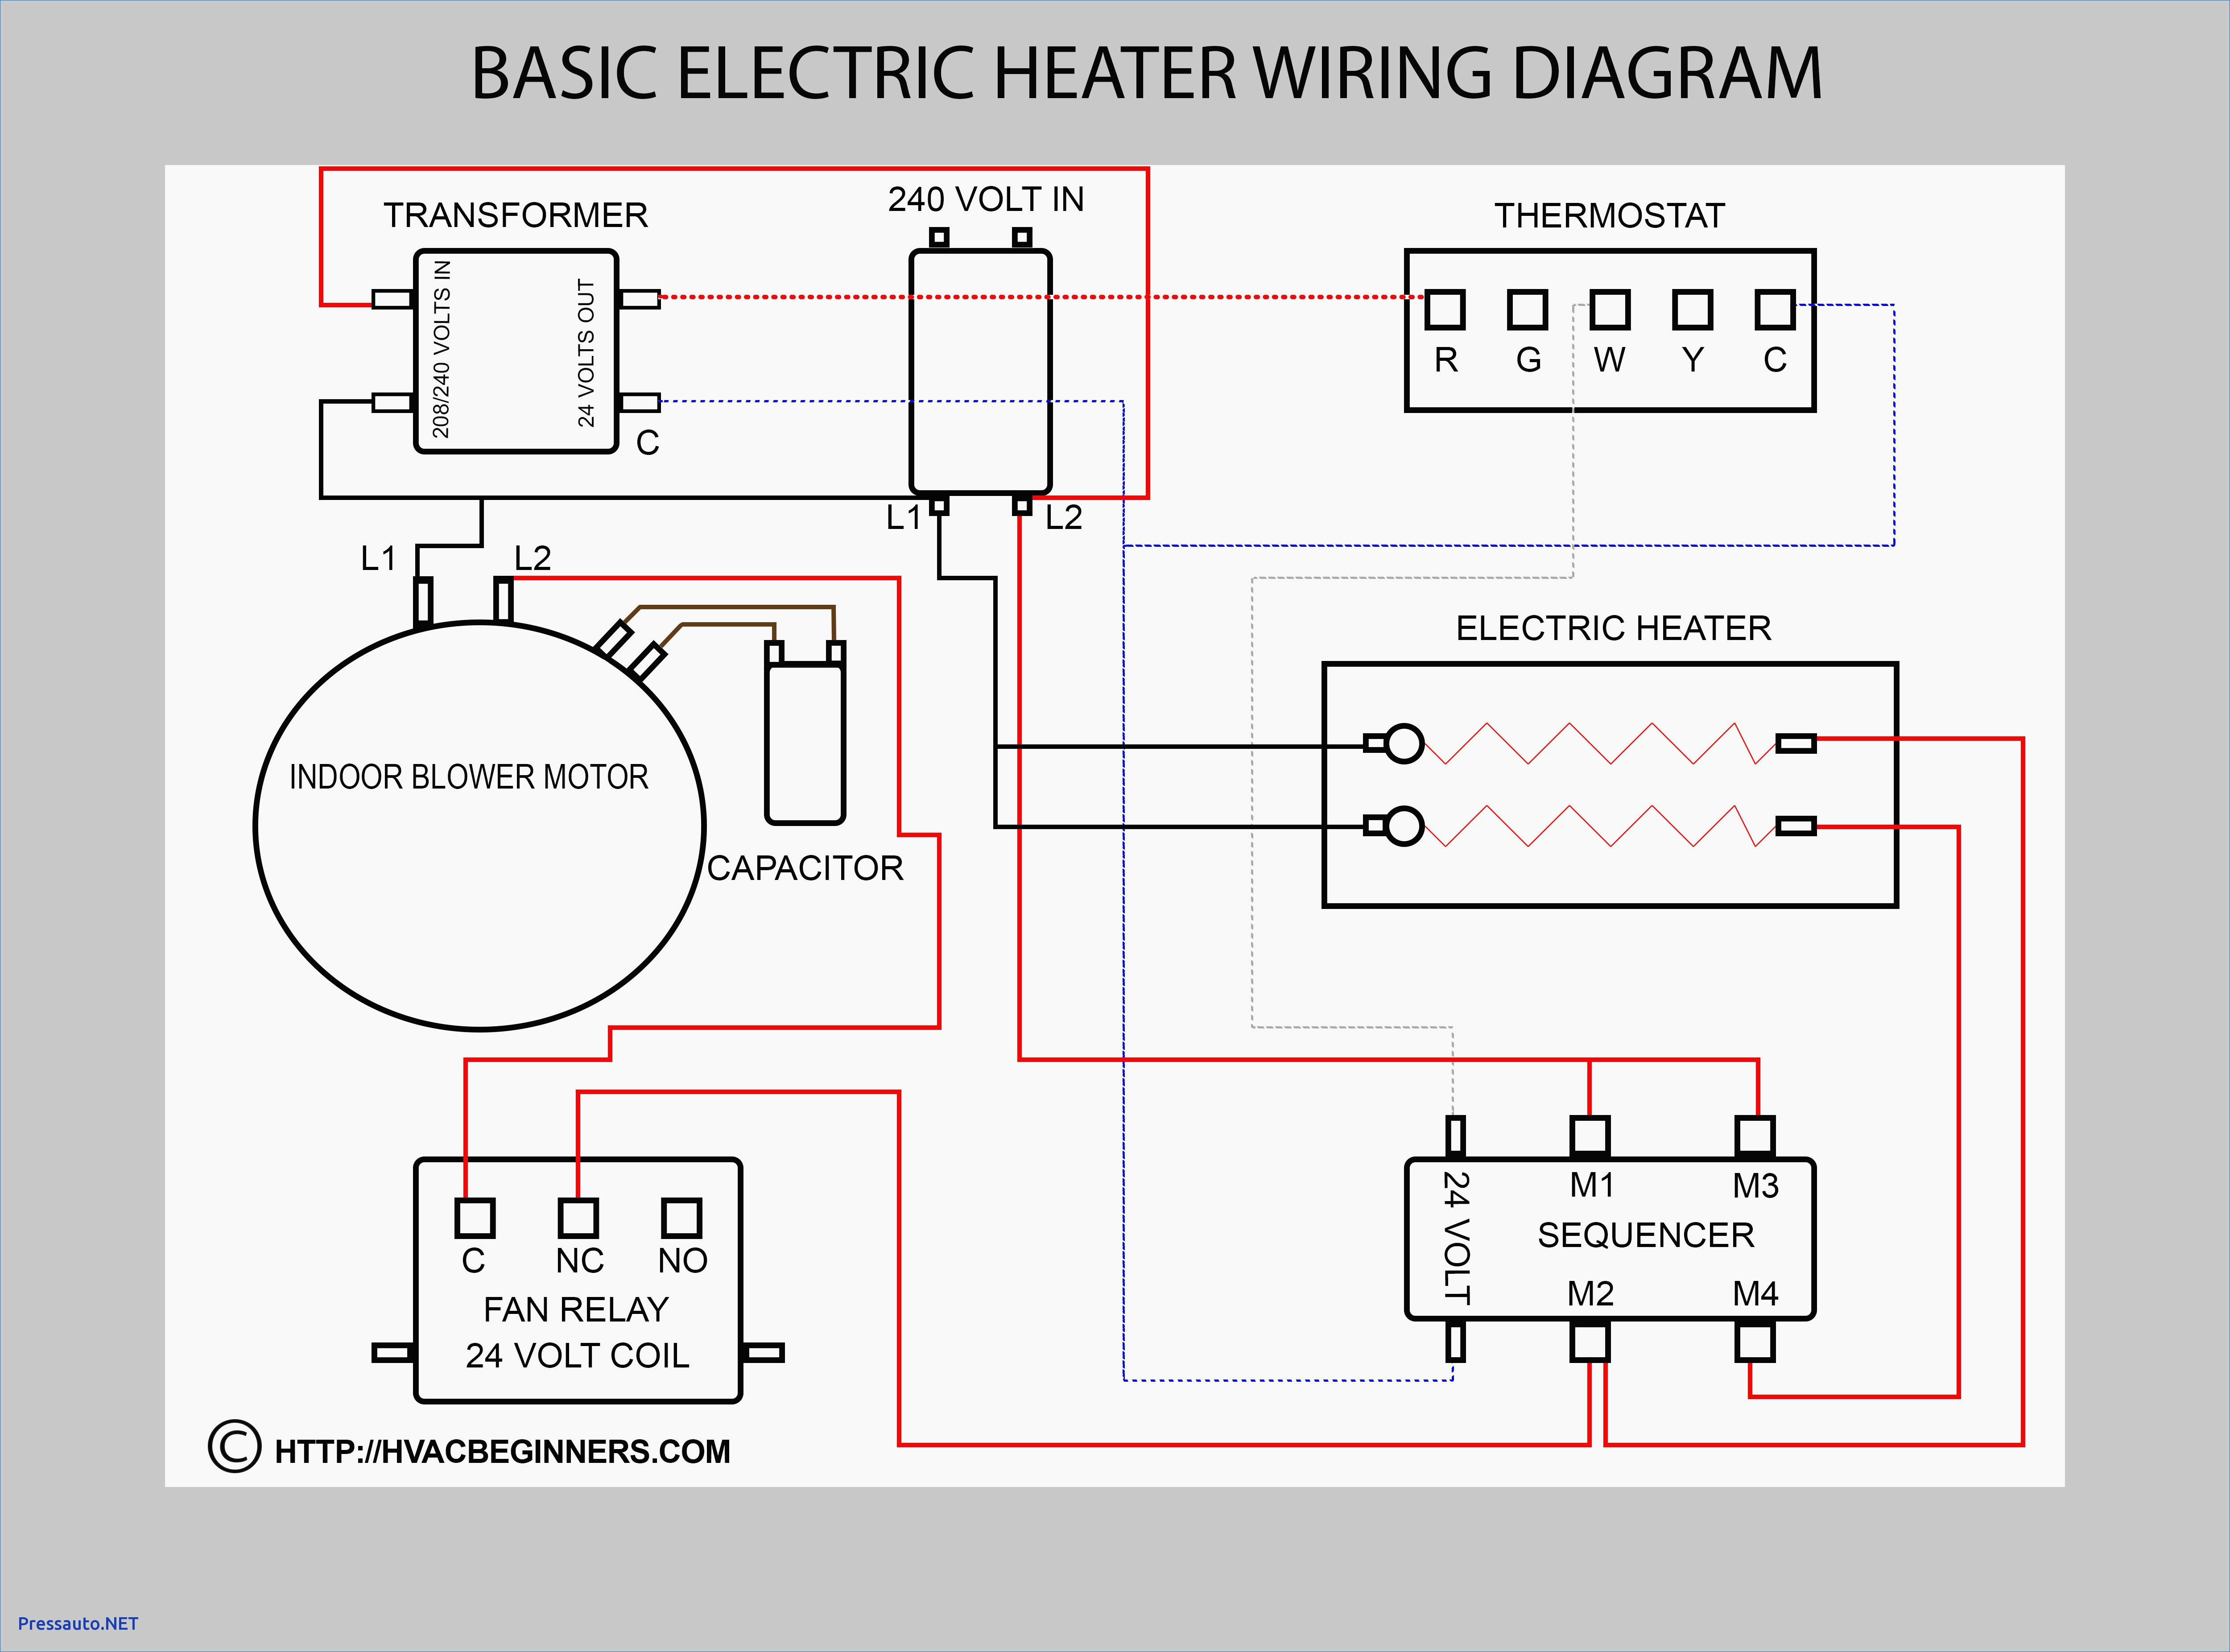 boiler wiring diagram for thermostat Download-Hive thermostat Wiring Diagram New Hive Controller Wiring Diagram New Boiler Wiring Diagram for 10-i